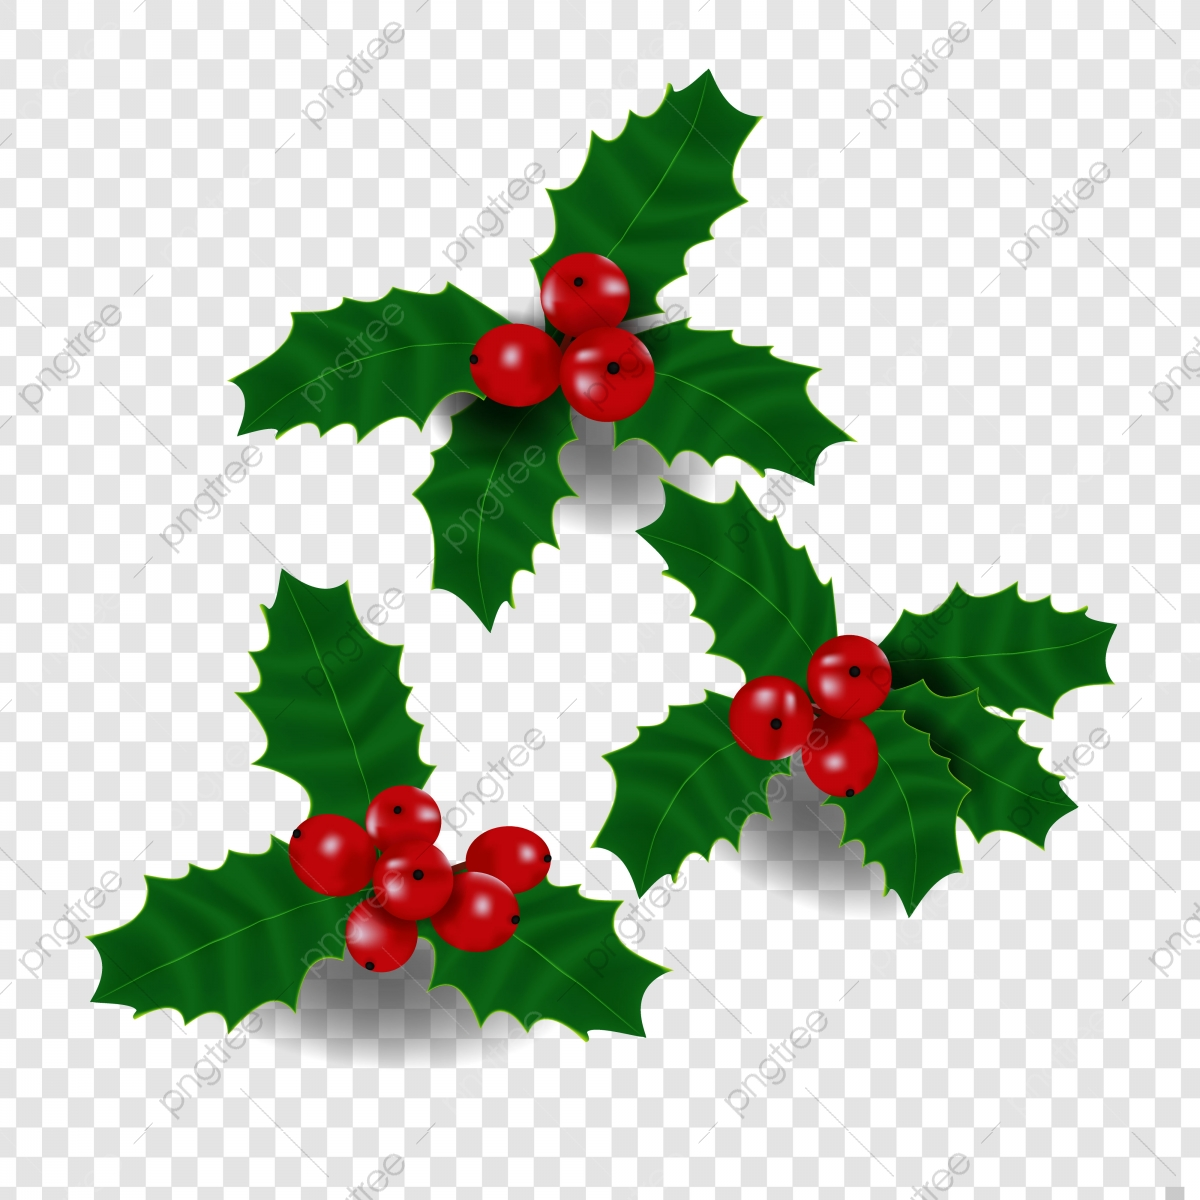 Christmas Ornament Png Vector Psd And Clipart With Transparent Background For Free Download Pngtree